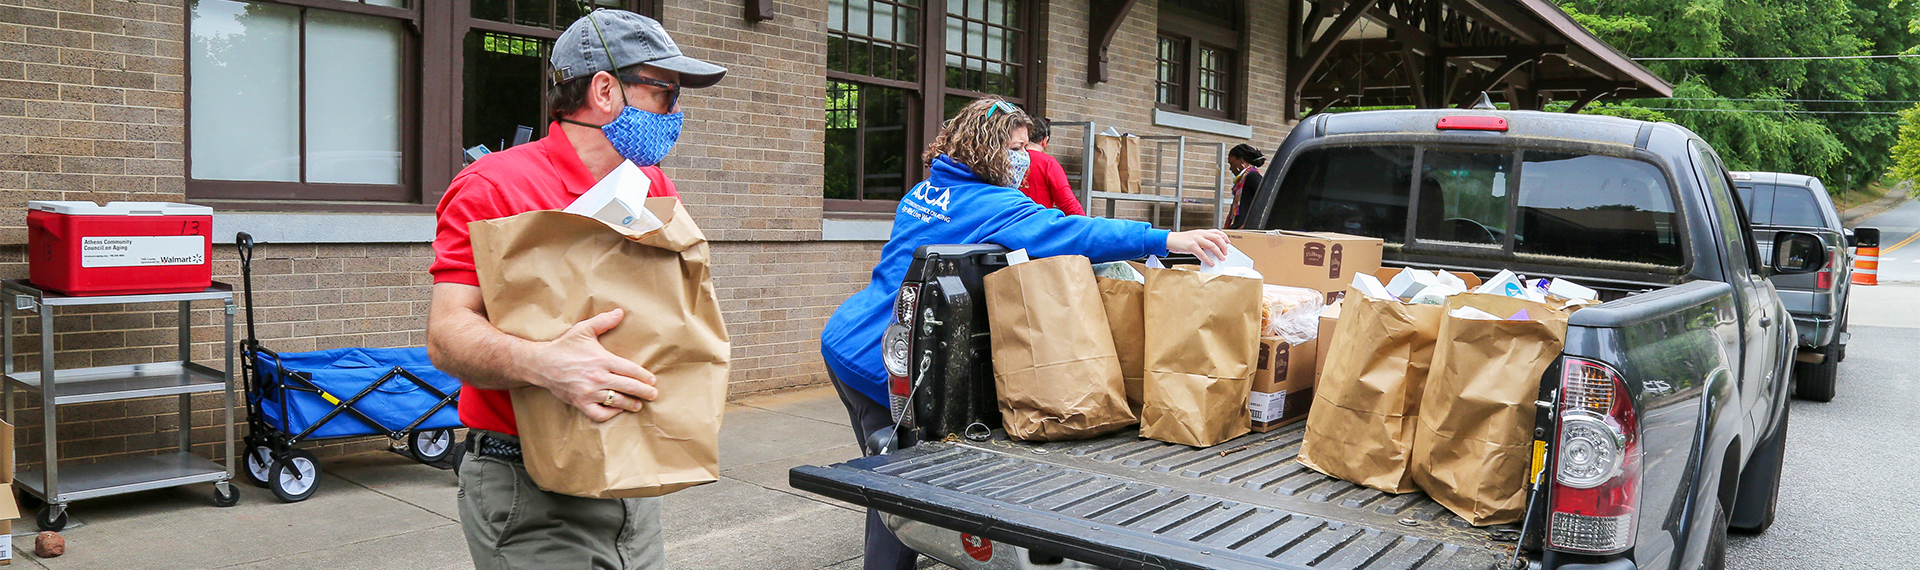 Volunteers load grocery bags of food into the back of a pickup truck.